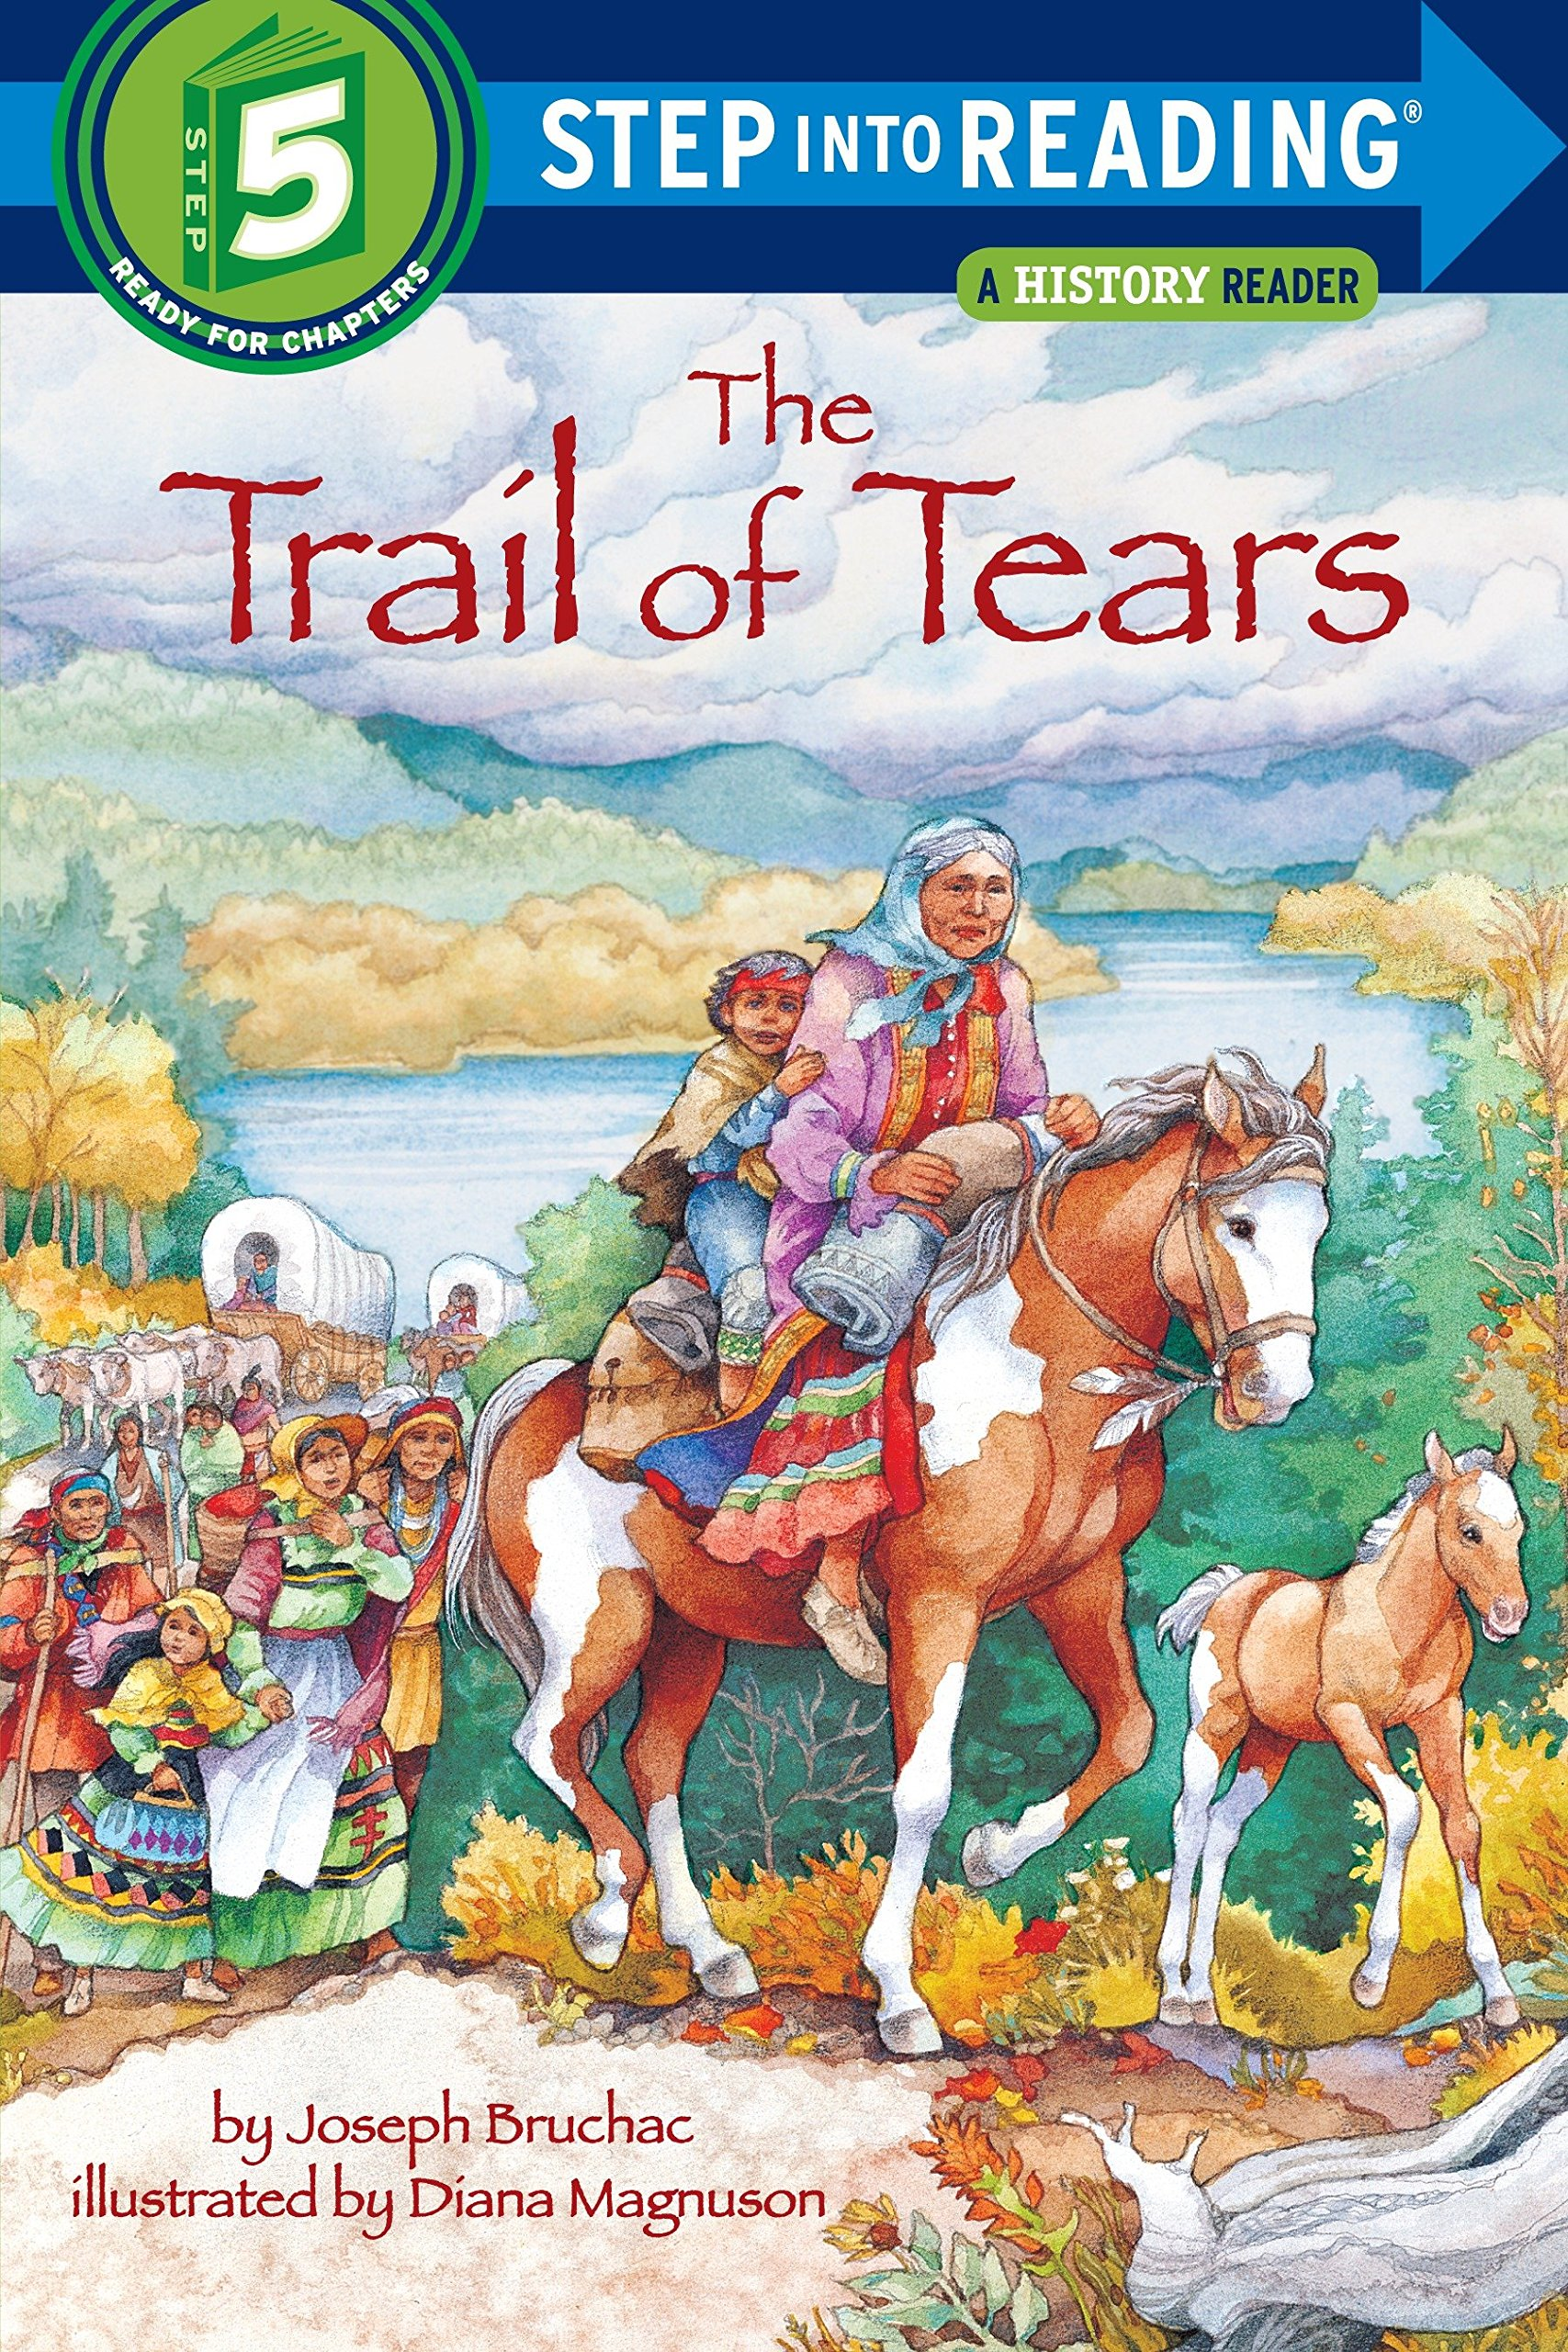 Image result for TRAIL OF TEARS BOOK